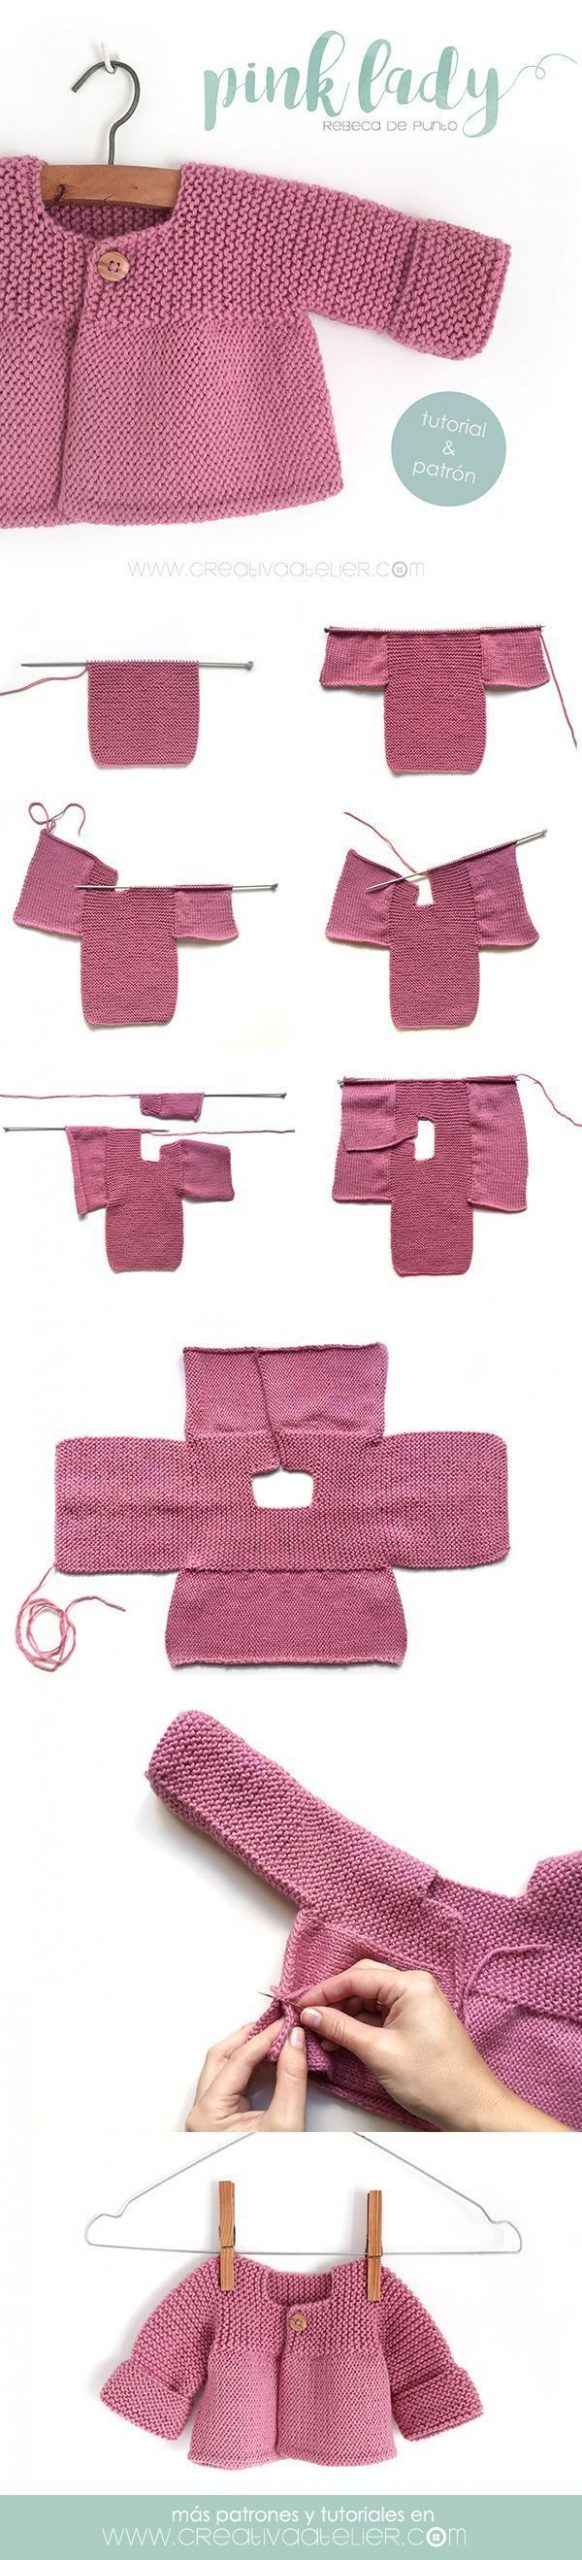 Learn to Knit an adorable Knit Cardigan with this step-by-step Tutorial with ...